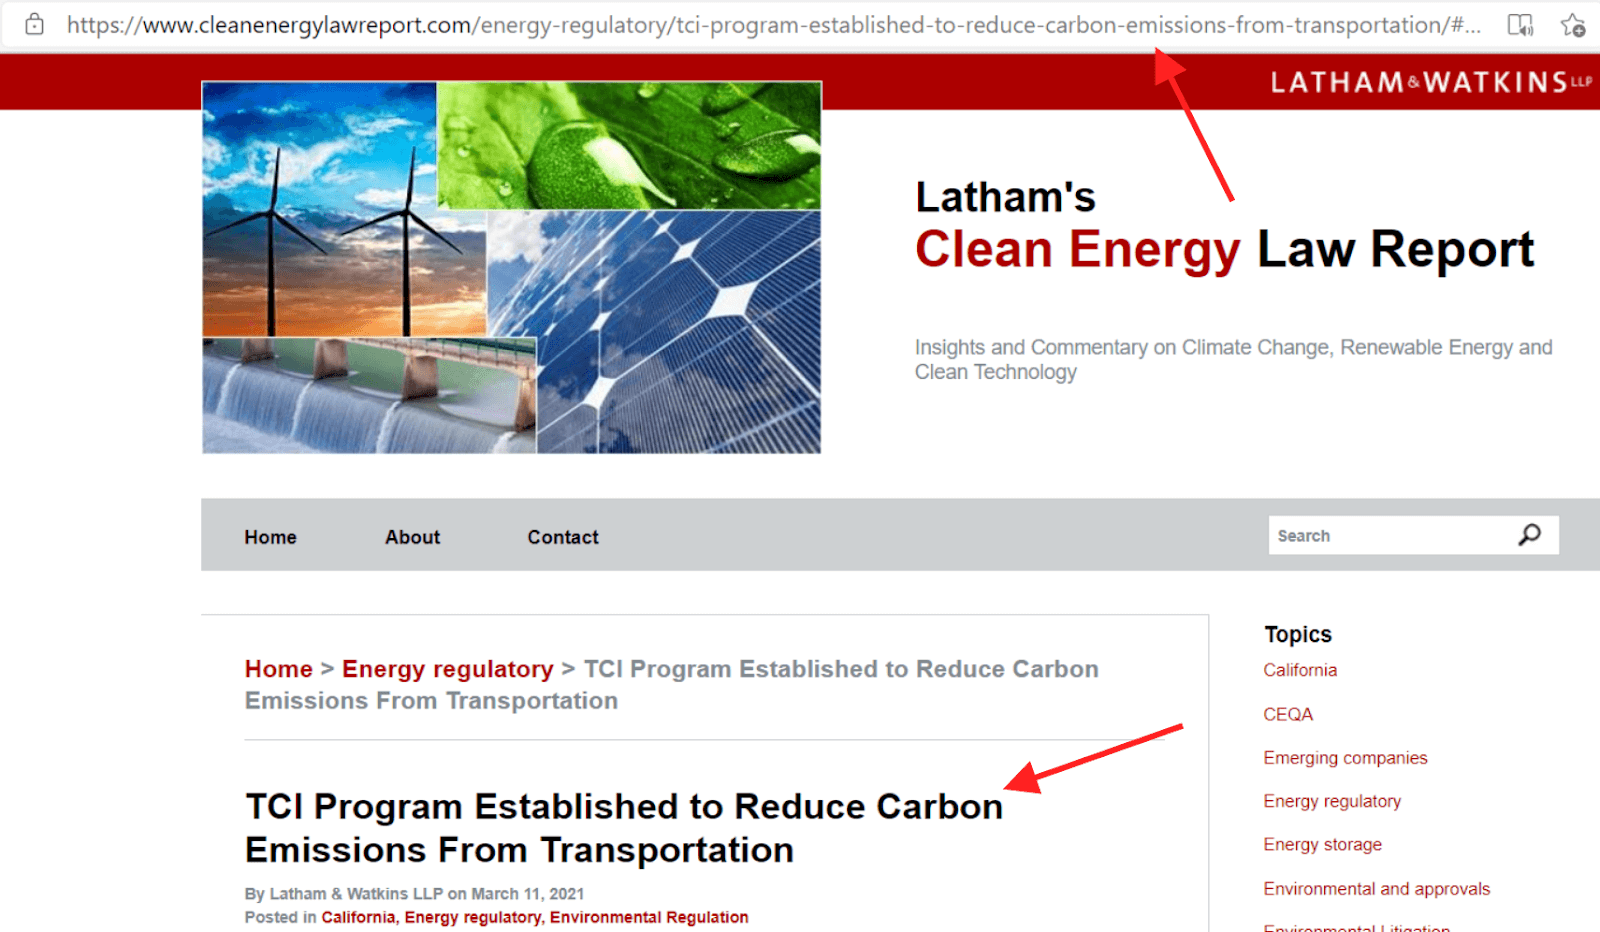 Clean Energy Law Report